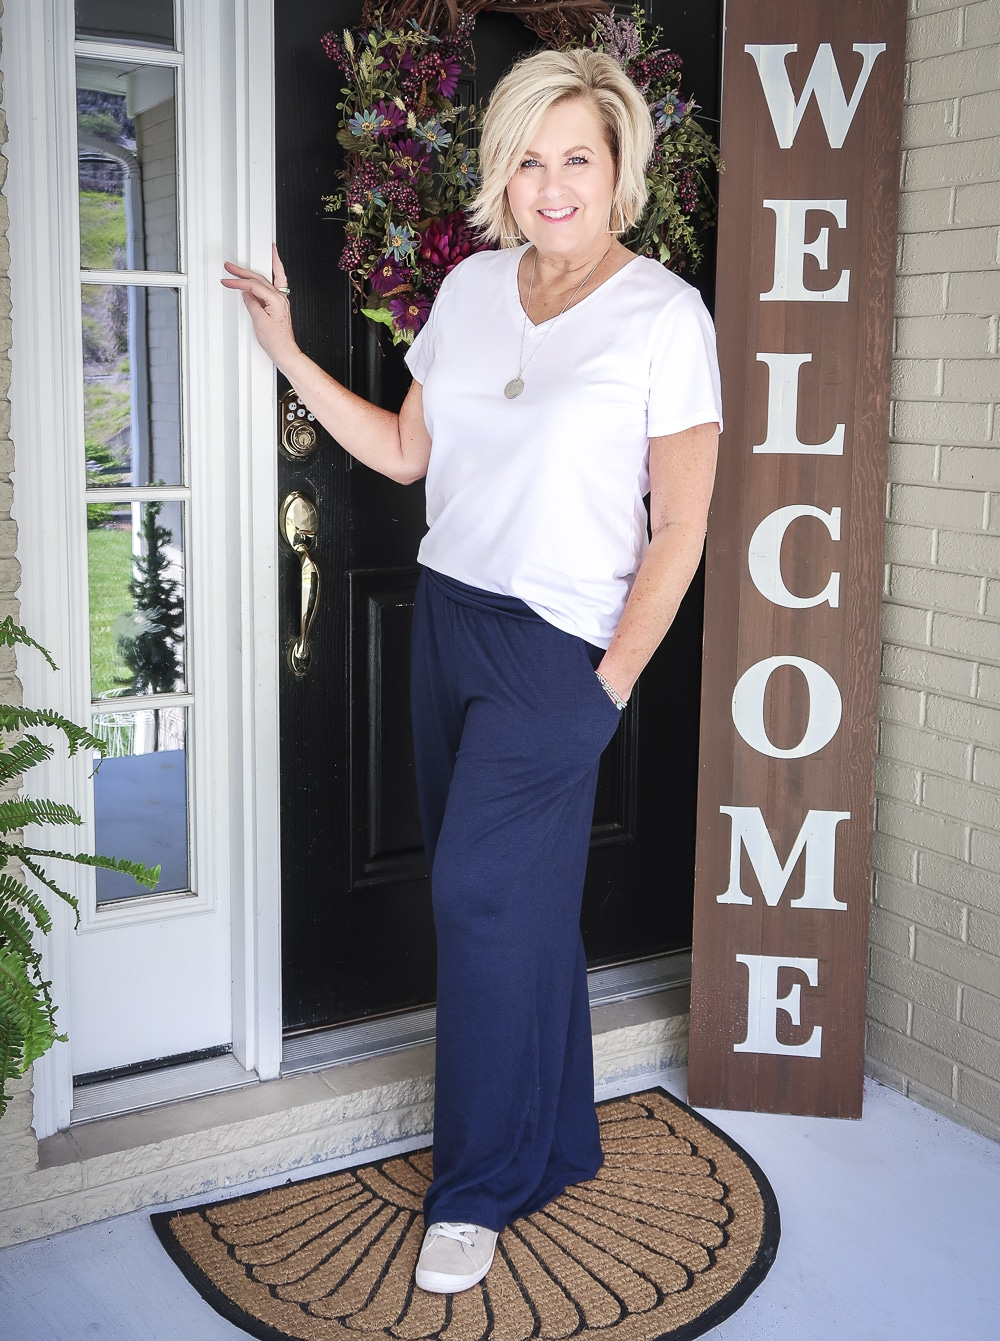 Fashion Blogger 50 Is Not Old wearing a white t-shirt, and navy lounge pants